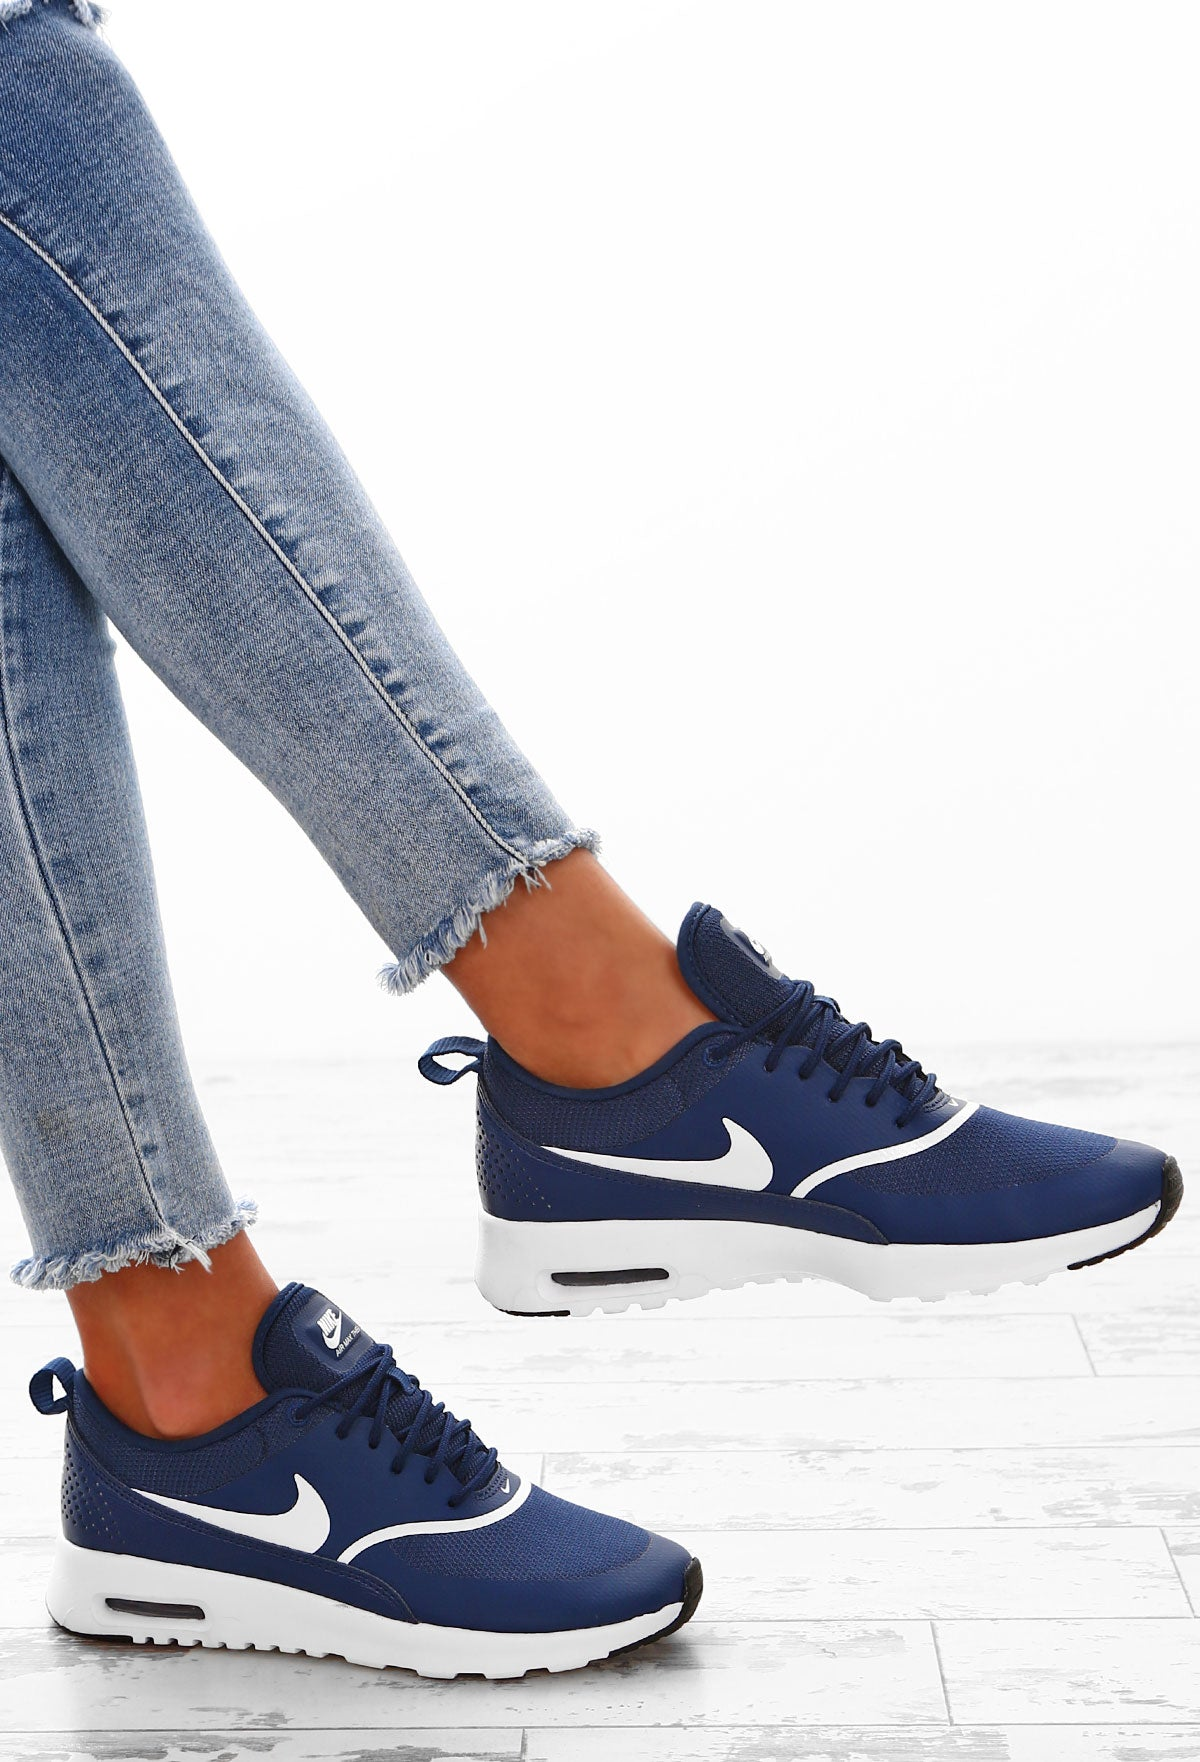 the best attitude 47d71 bdcb5 Nike Air Max Thea Navy Trainers – Pink Boutique UK